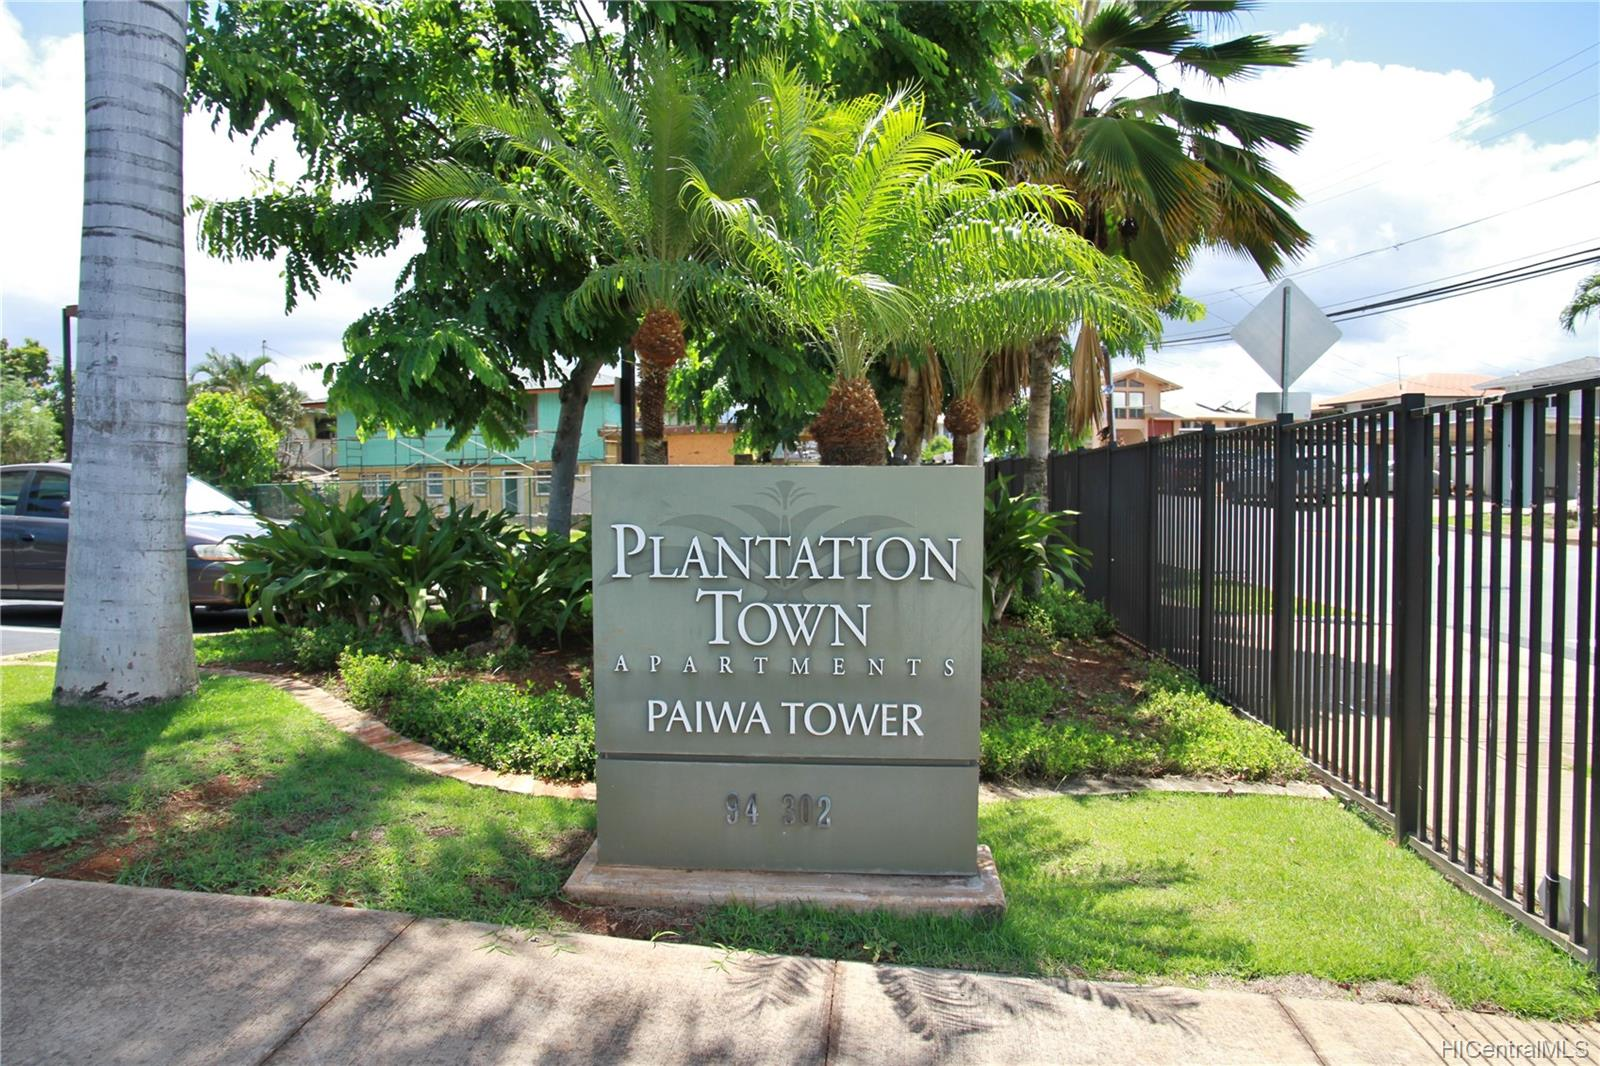 Plantation Town Apartments 94-302 Paiwa Street  Unit 807